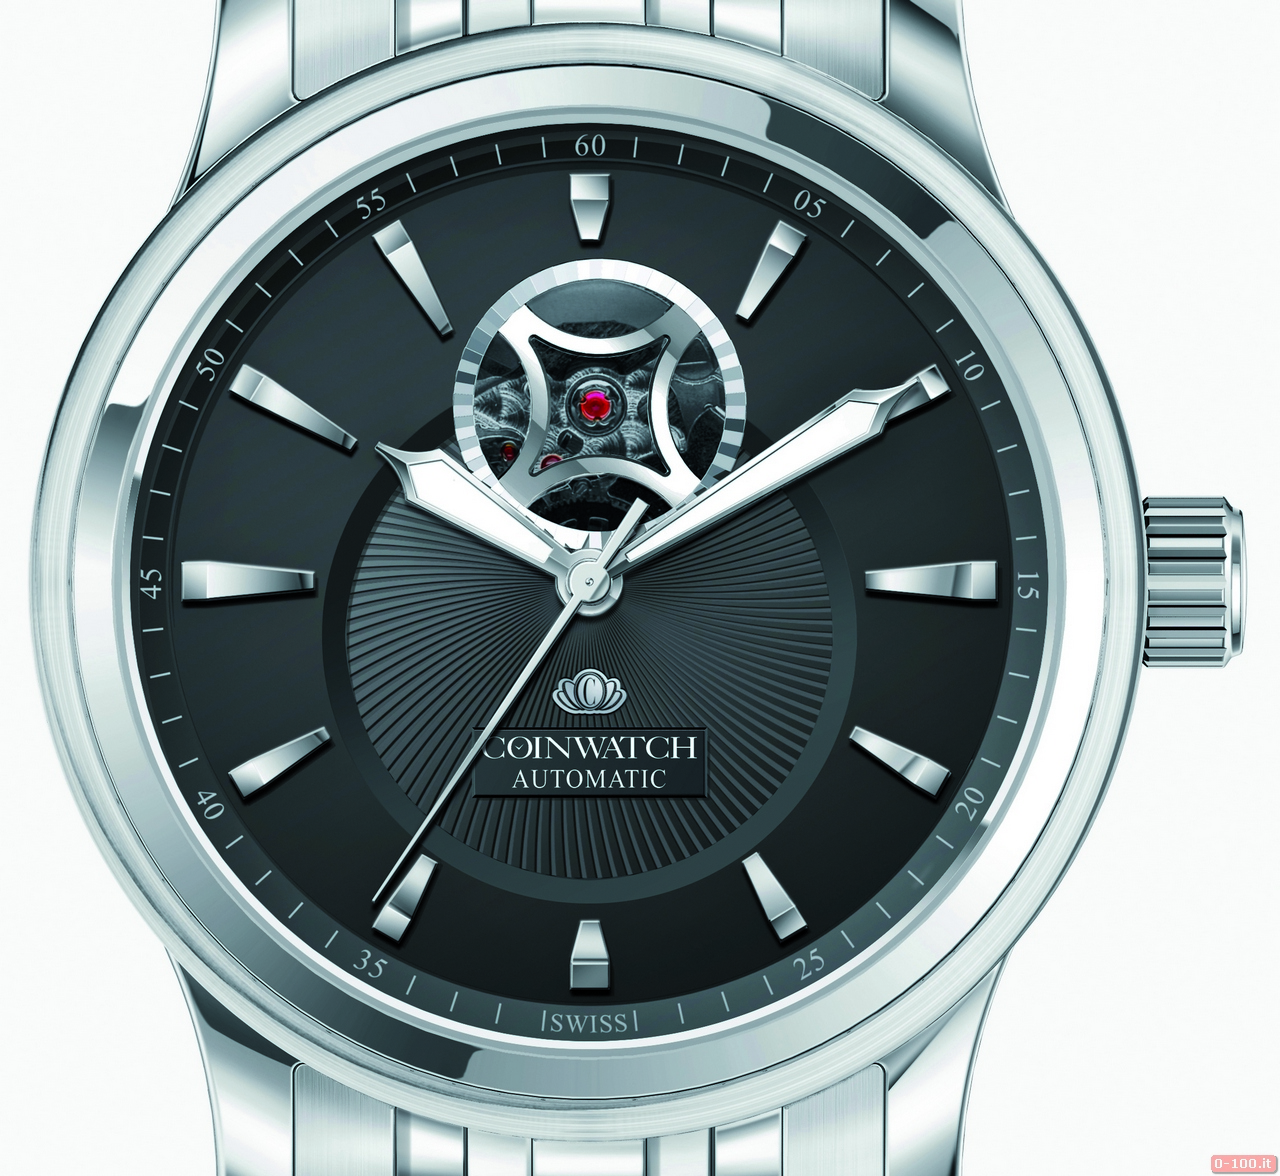 baselworld-2013-coinwatch-mark-collection-c143sbk_0-100 3